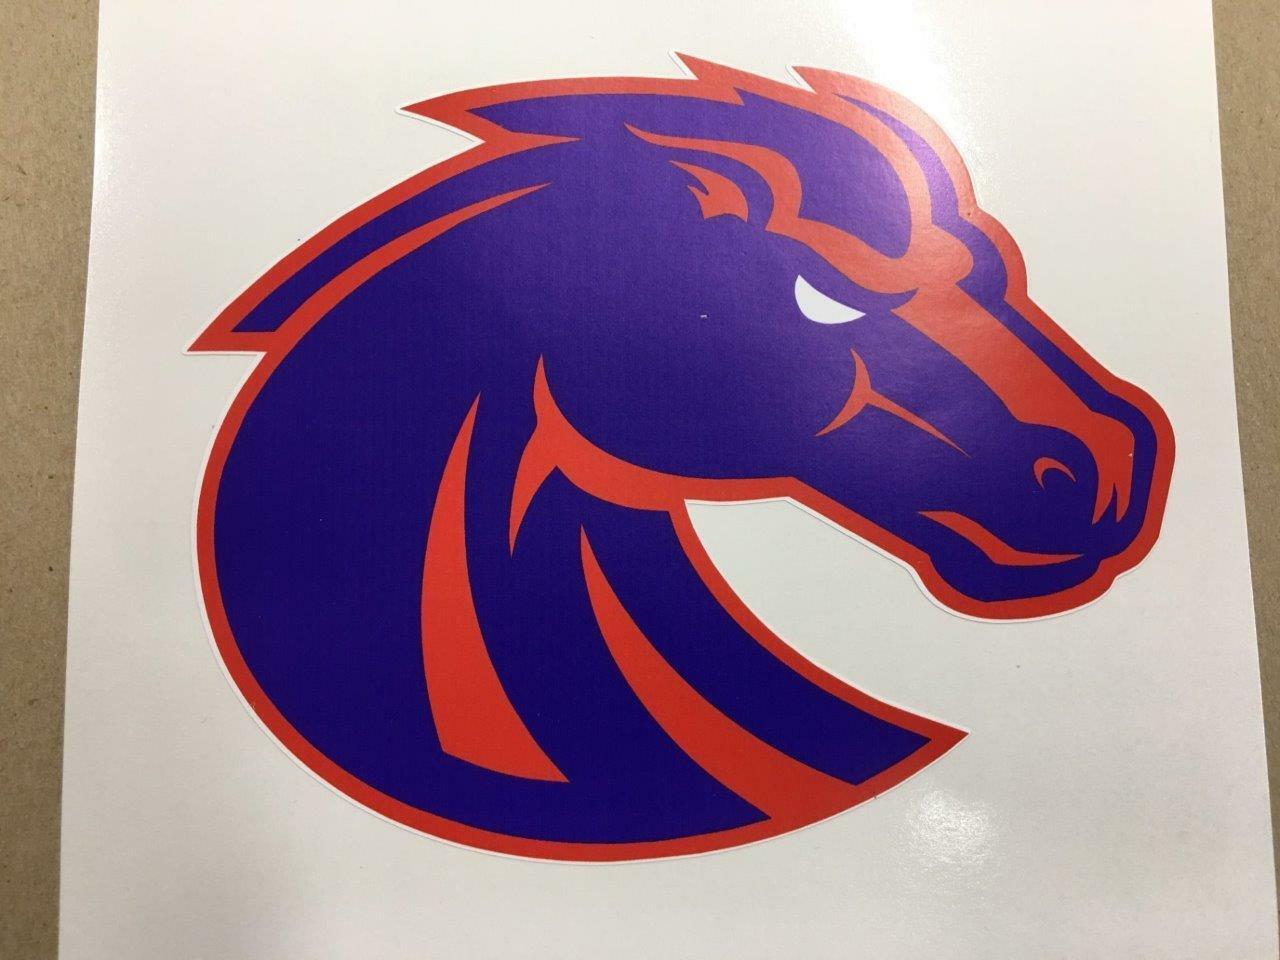 Boise State cornhole board  or vehicle decal(s)BS2  fast shipping and best service